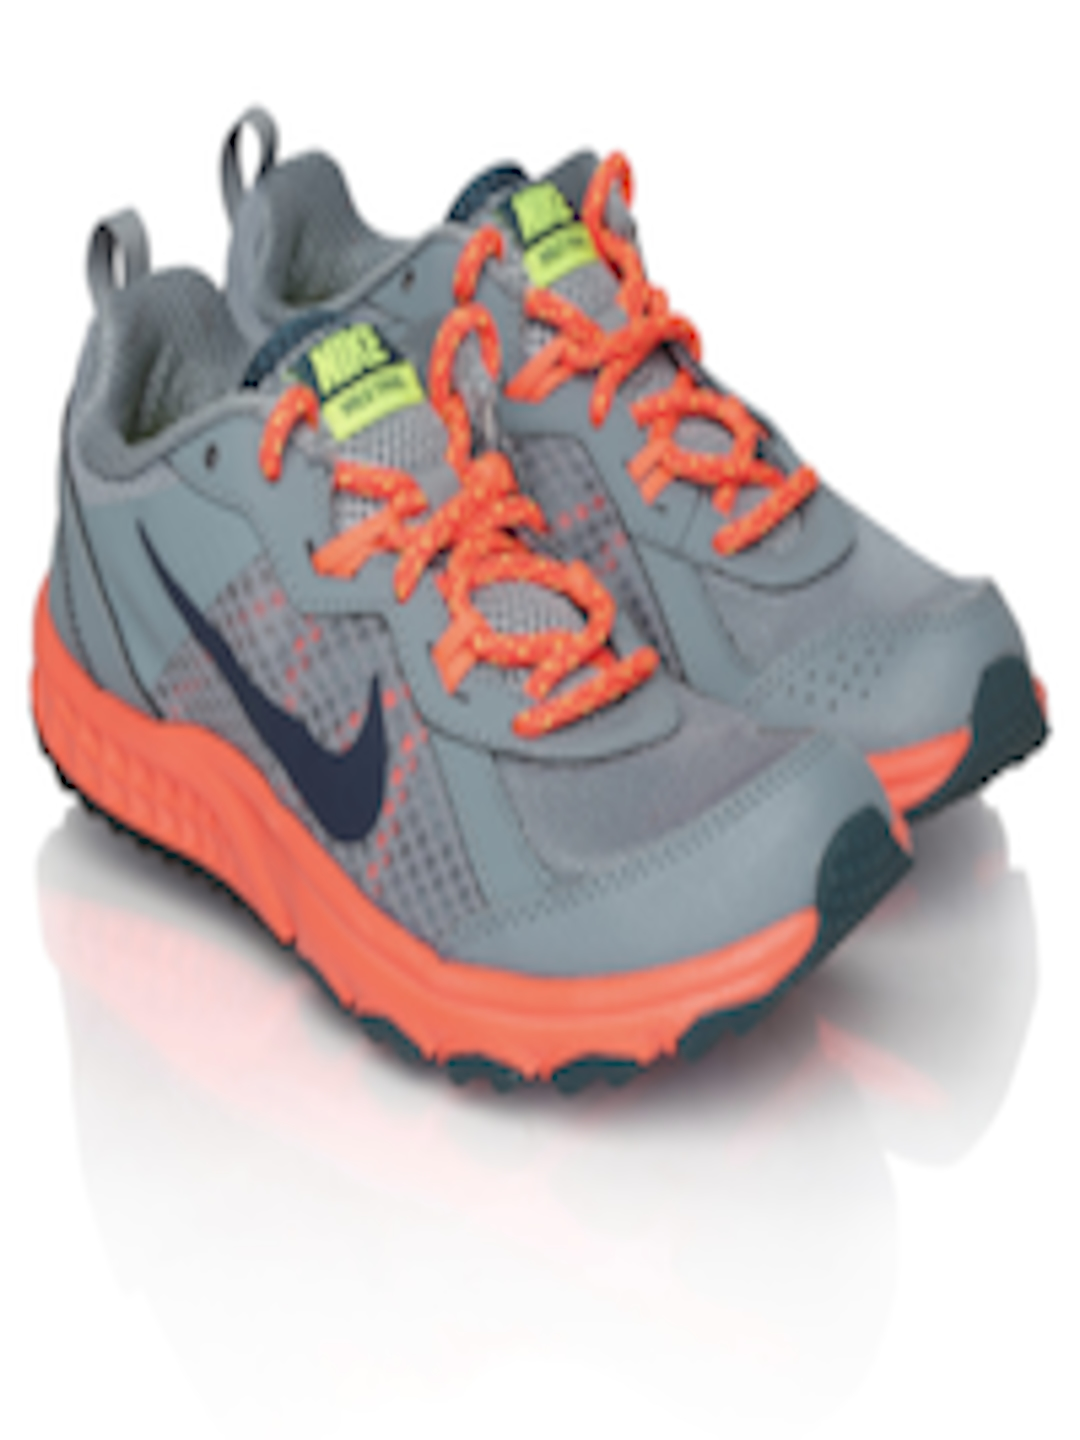 Buy Nike Wild Trail Shoes